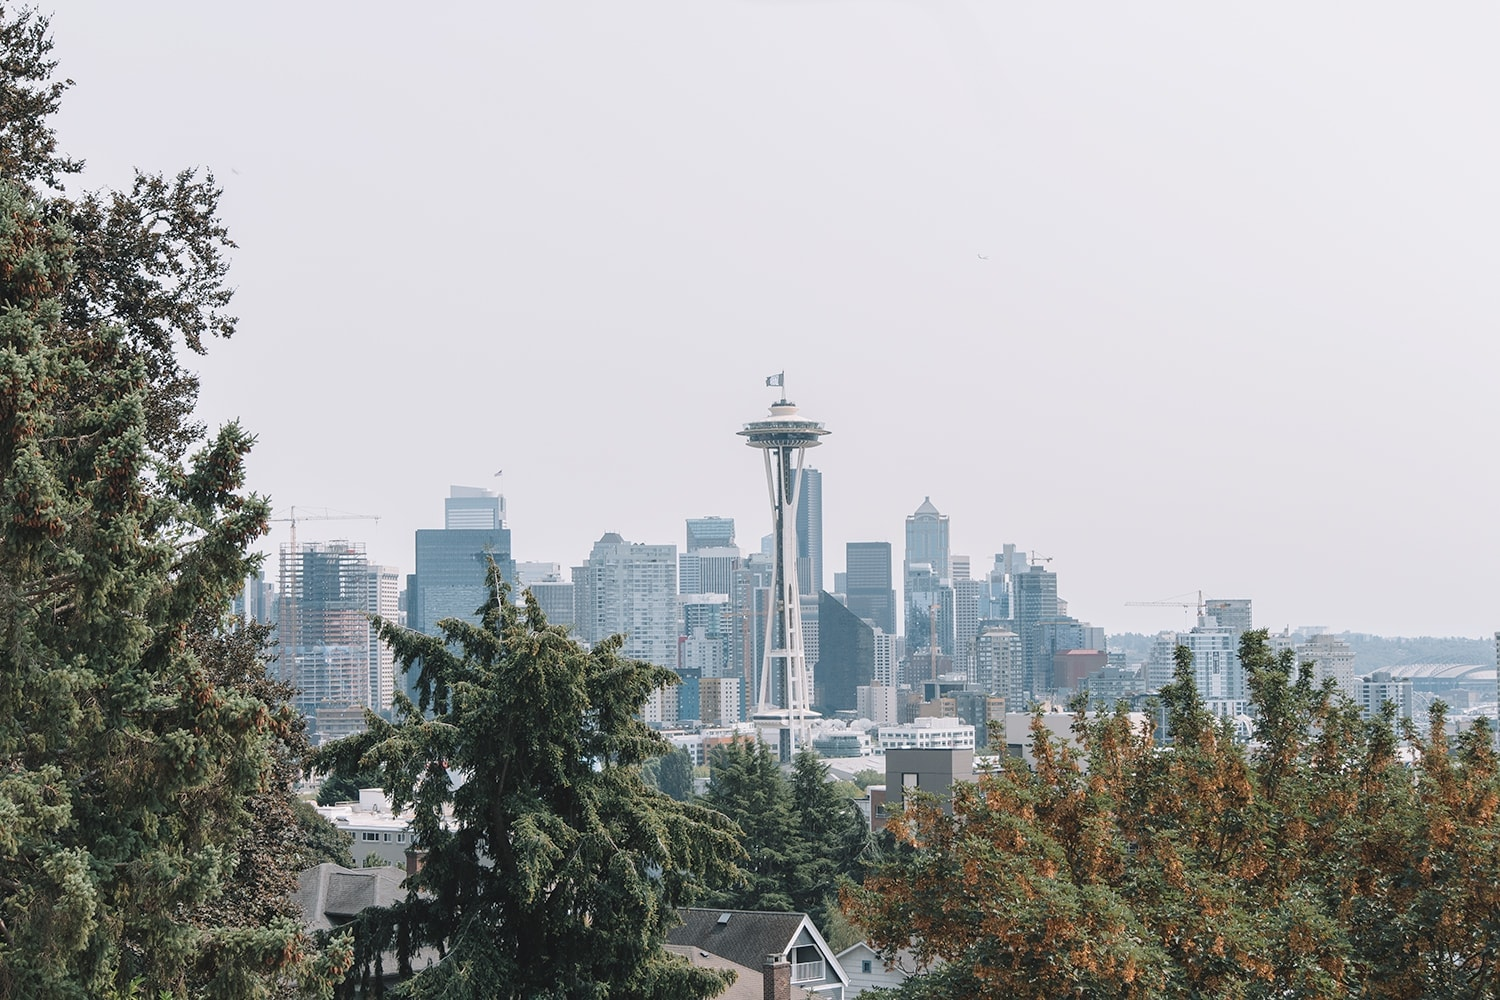 Kerry Park in Seattle, Washington - Pacific Northwest Road Trip travel guide